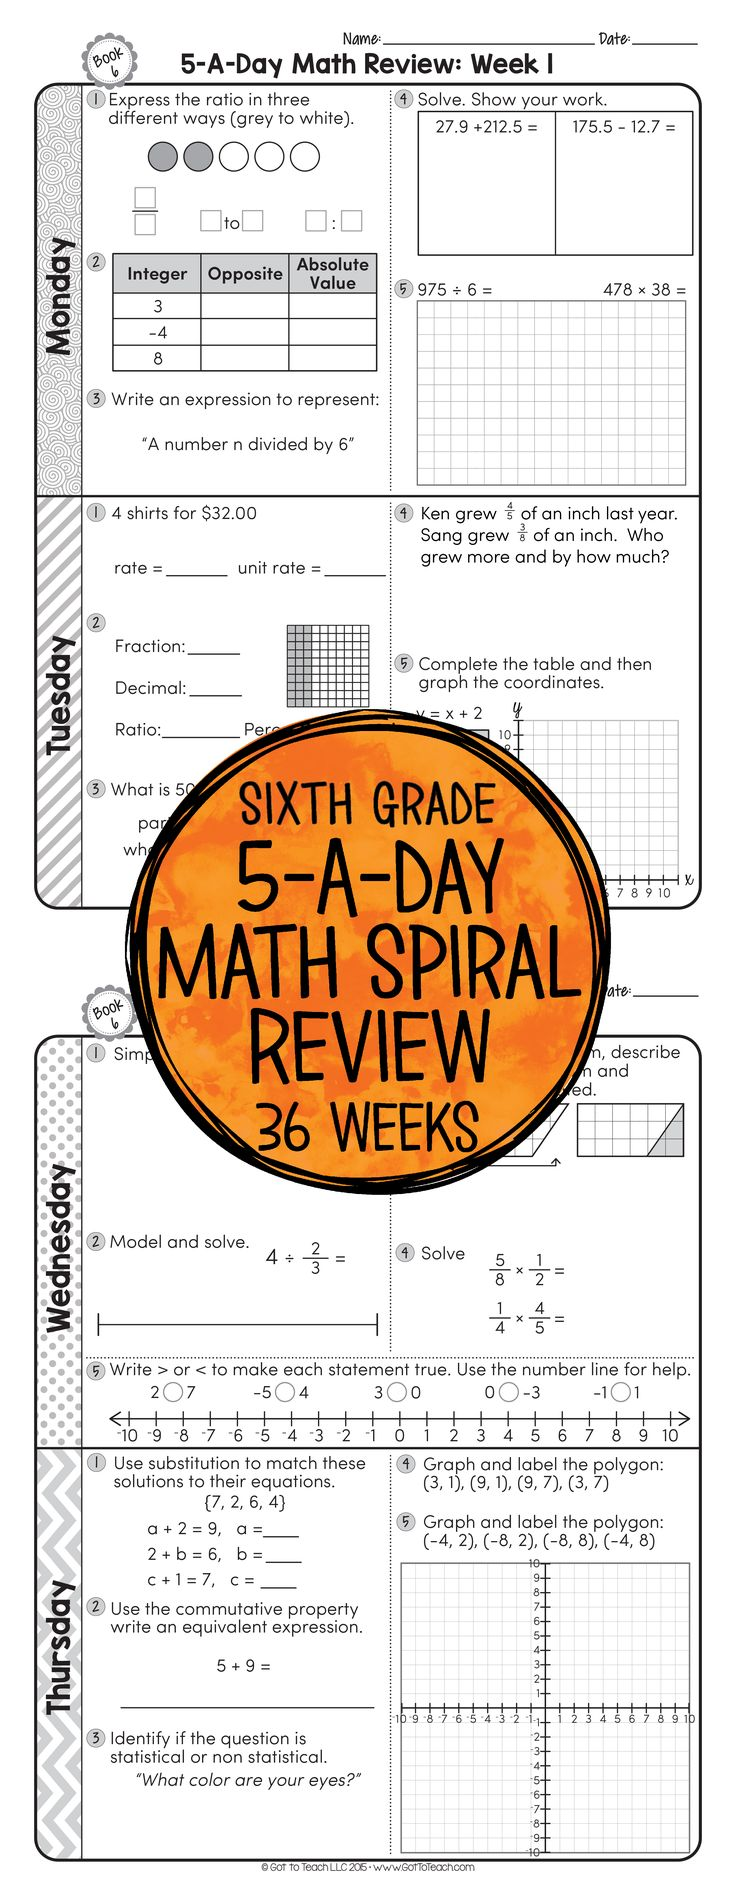 60287 best SixthGradeStaff.com images on Pinterest | Teaching ideas ...